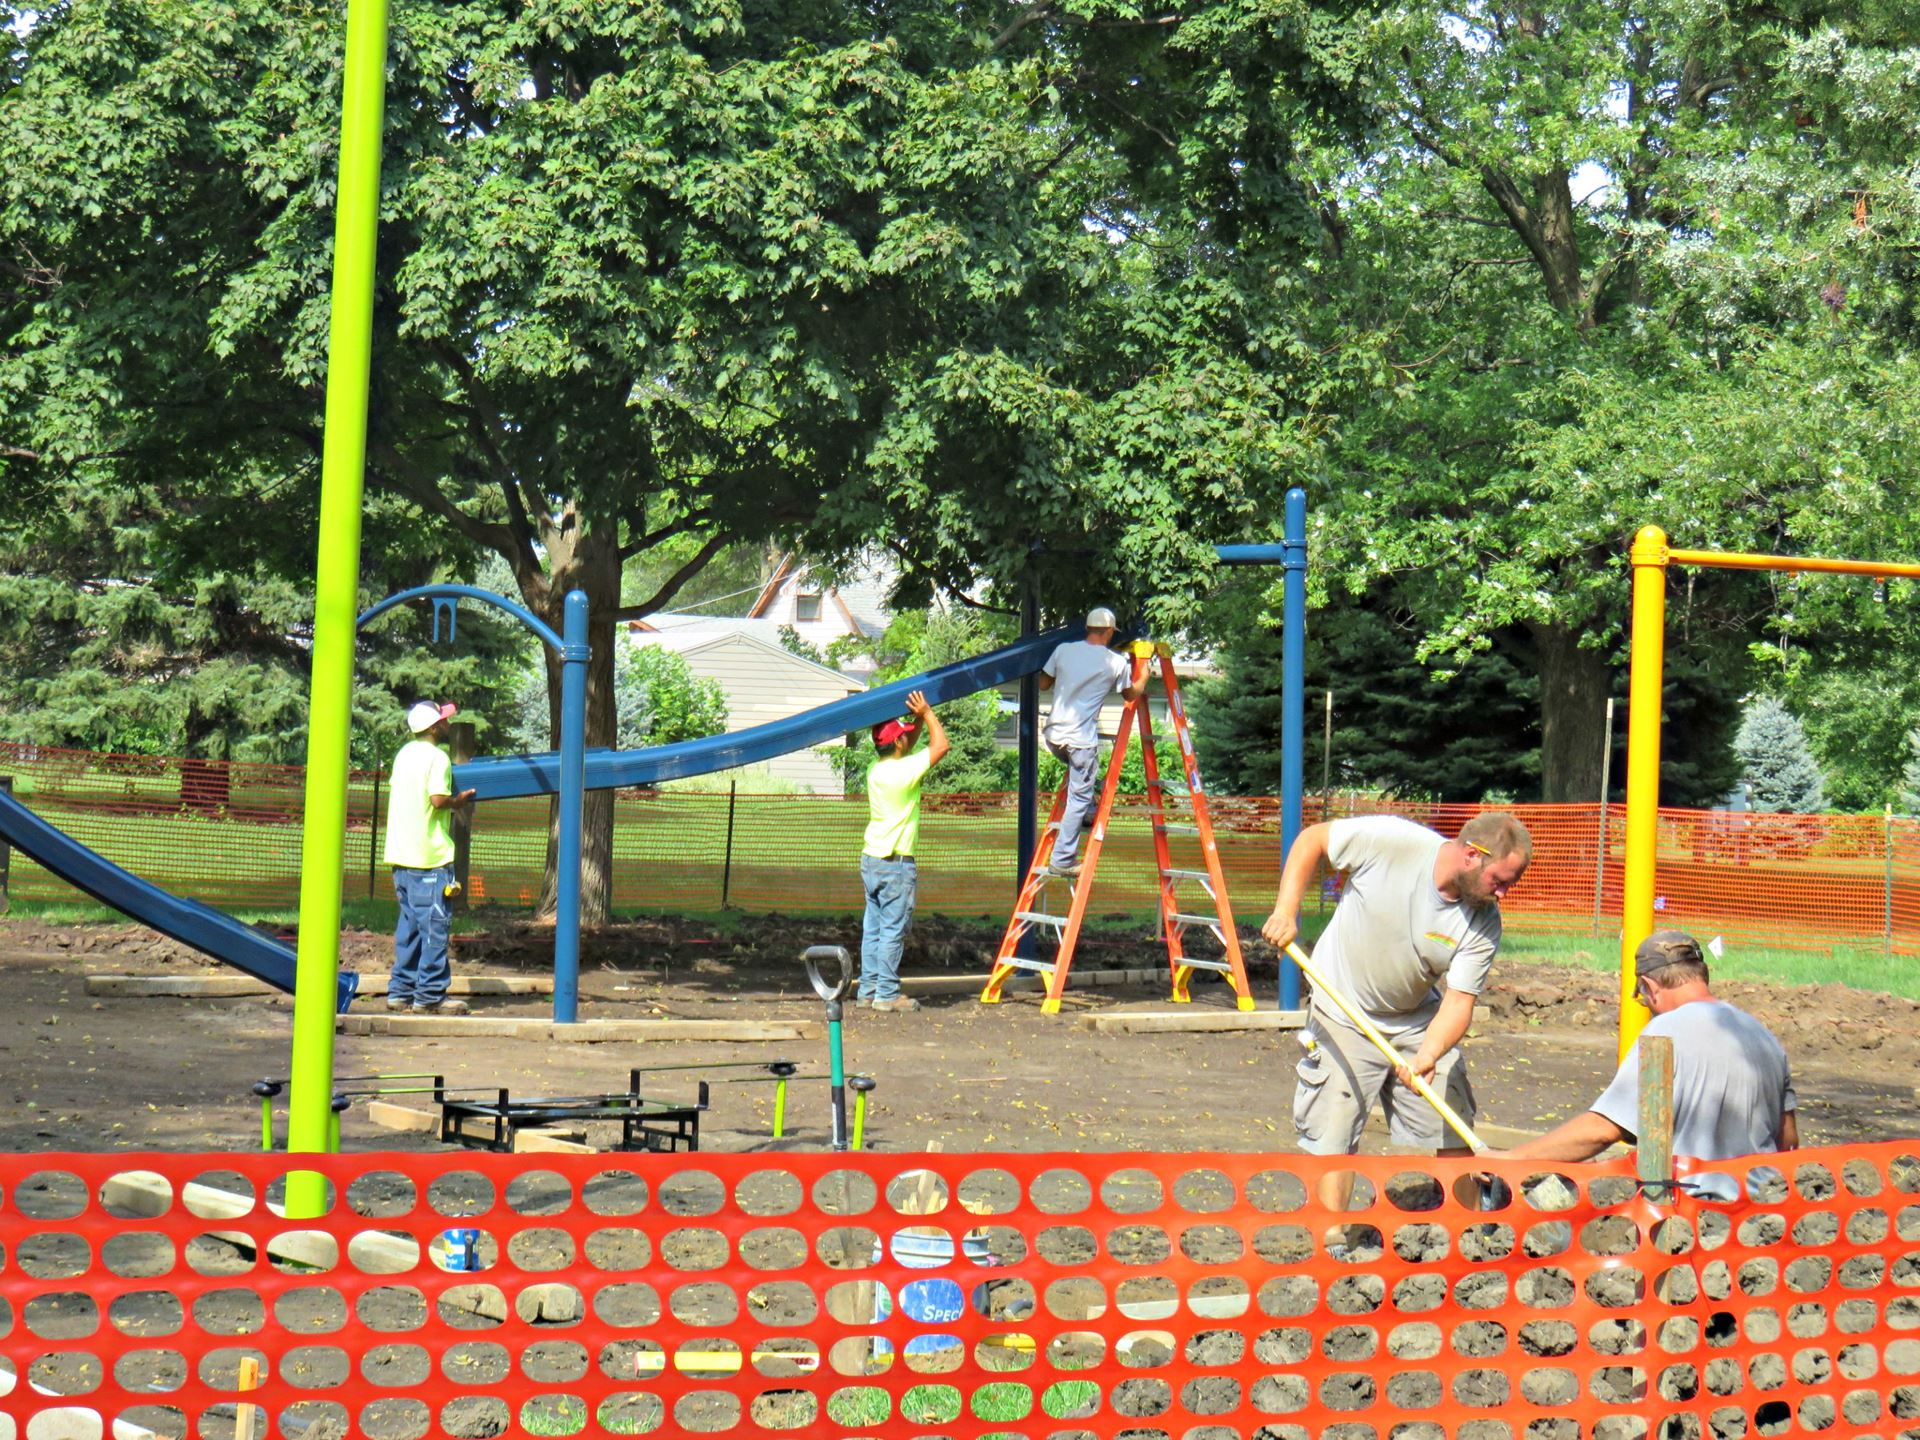 workers setting up play equipment while other workers are digging at site